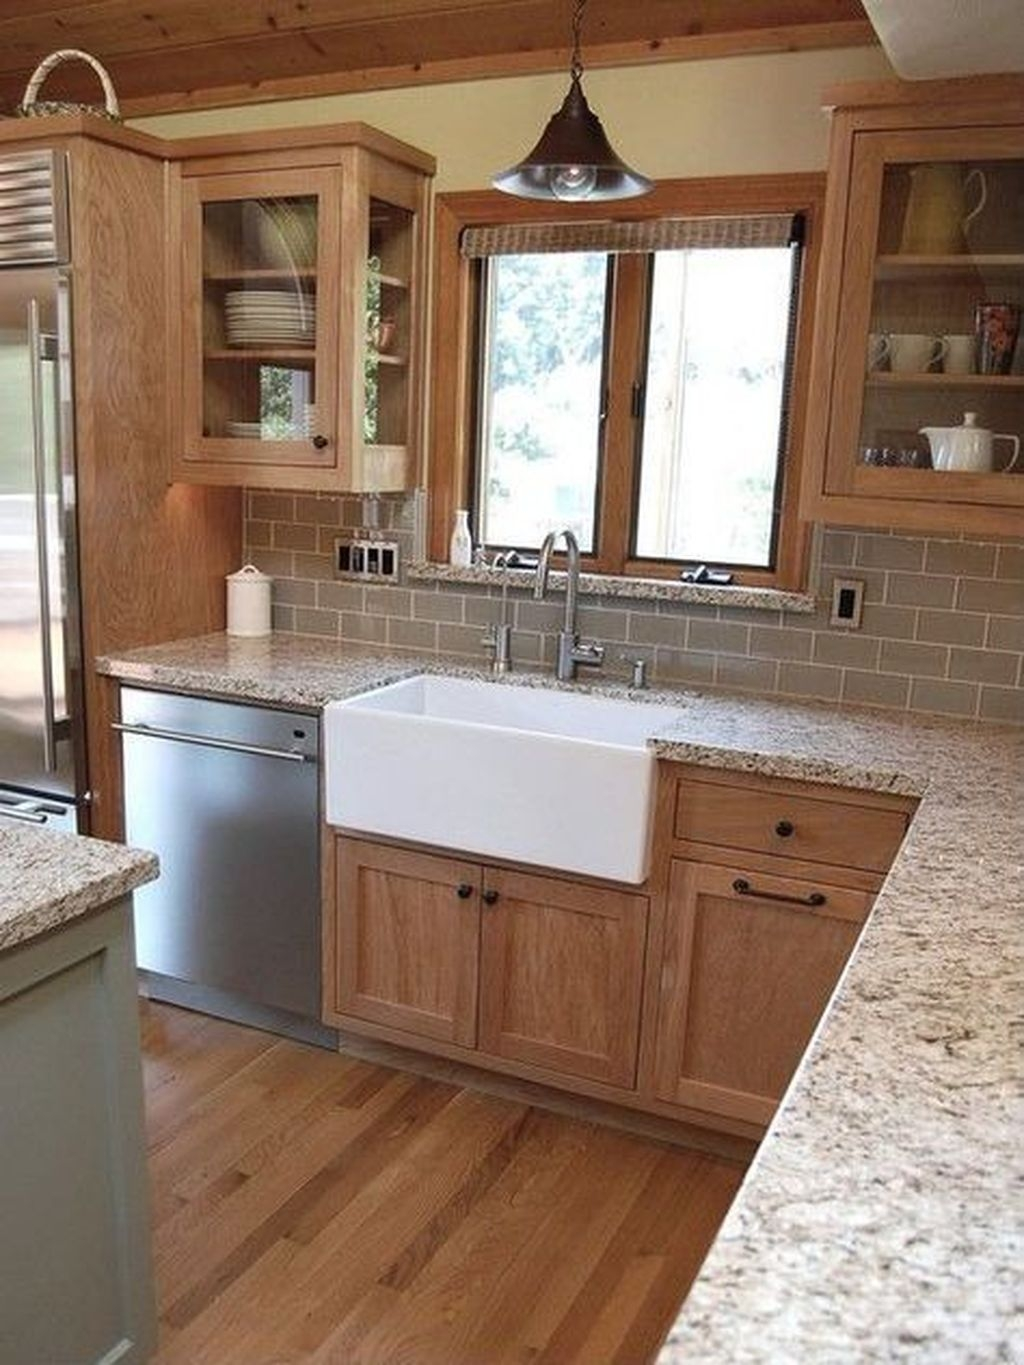 Modern Farmhouse Kitchen Cabinet Makeover Design Ideas35